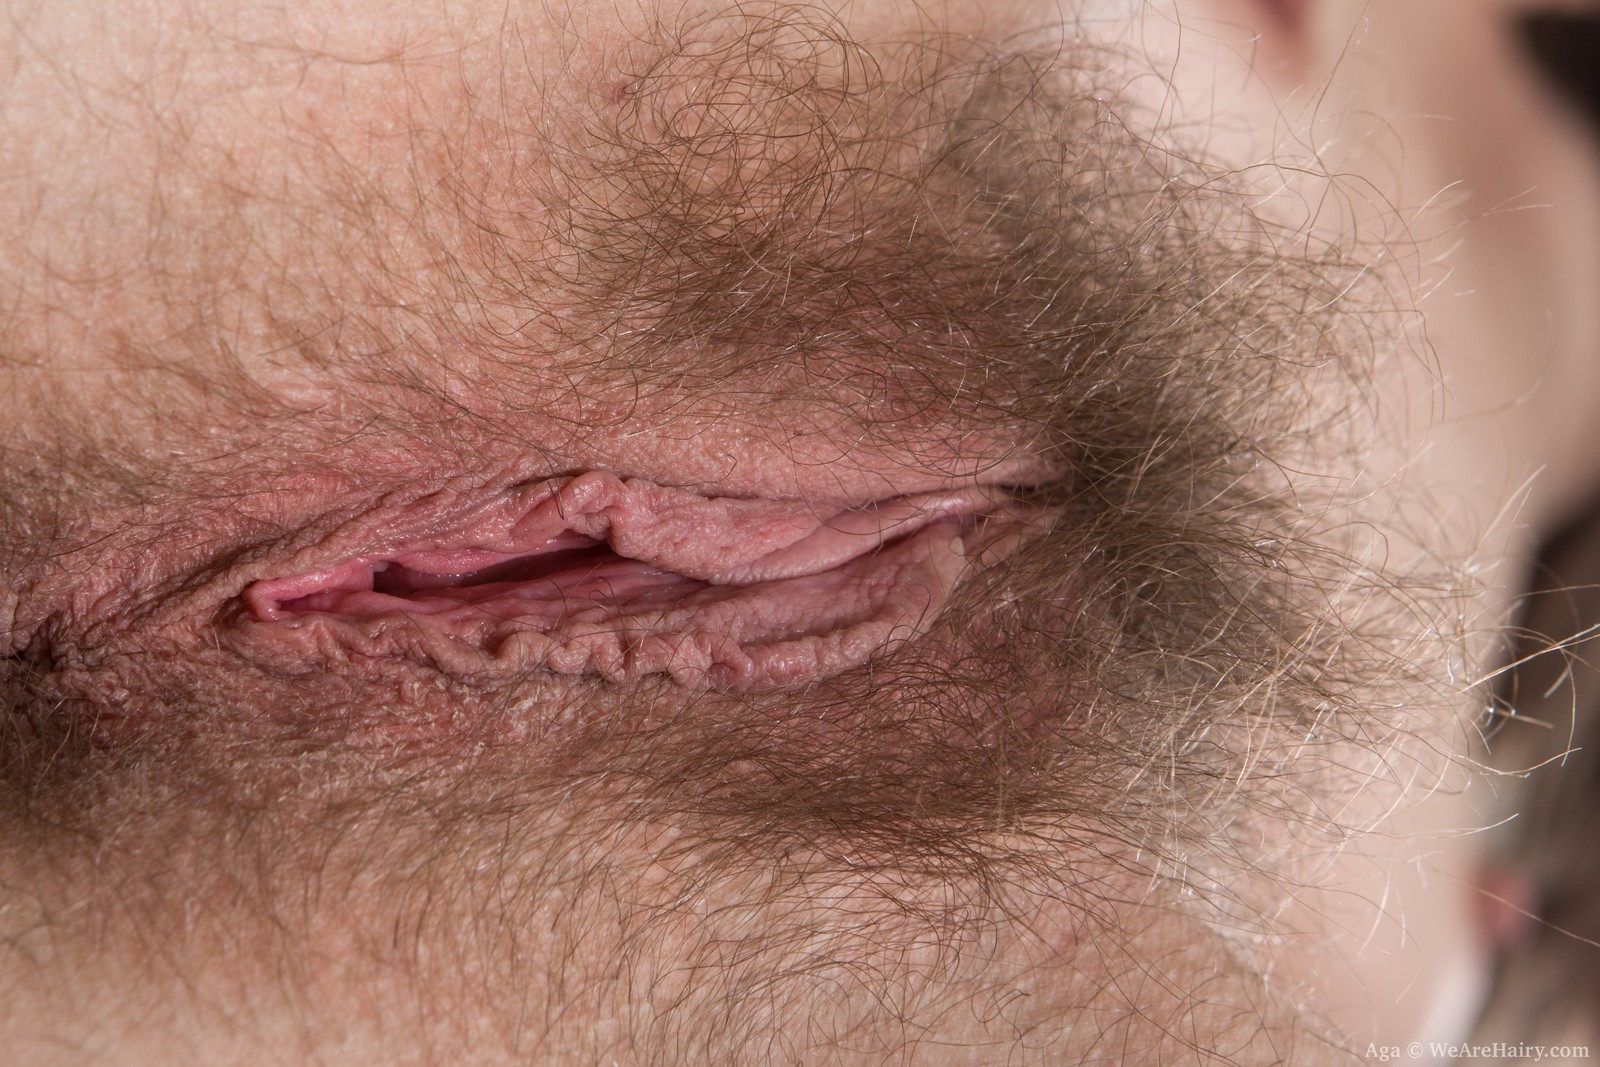 hairy ass milf close up hirsute vagina | the hairy lady blog